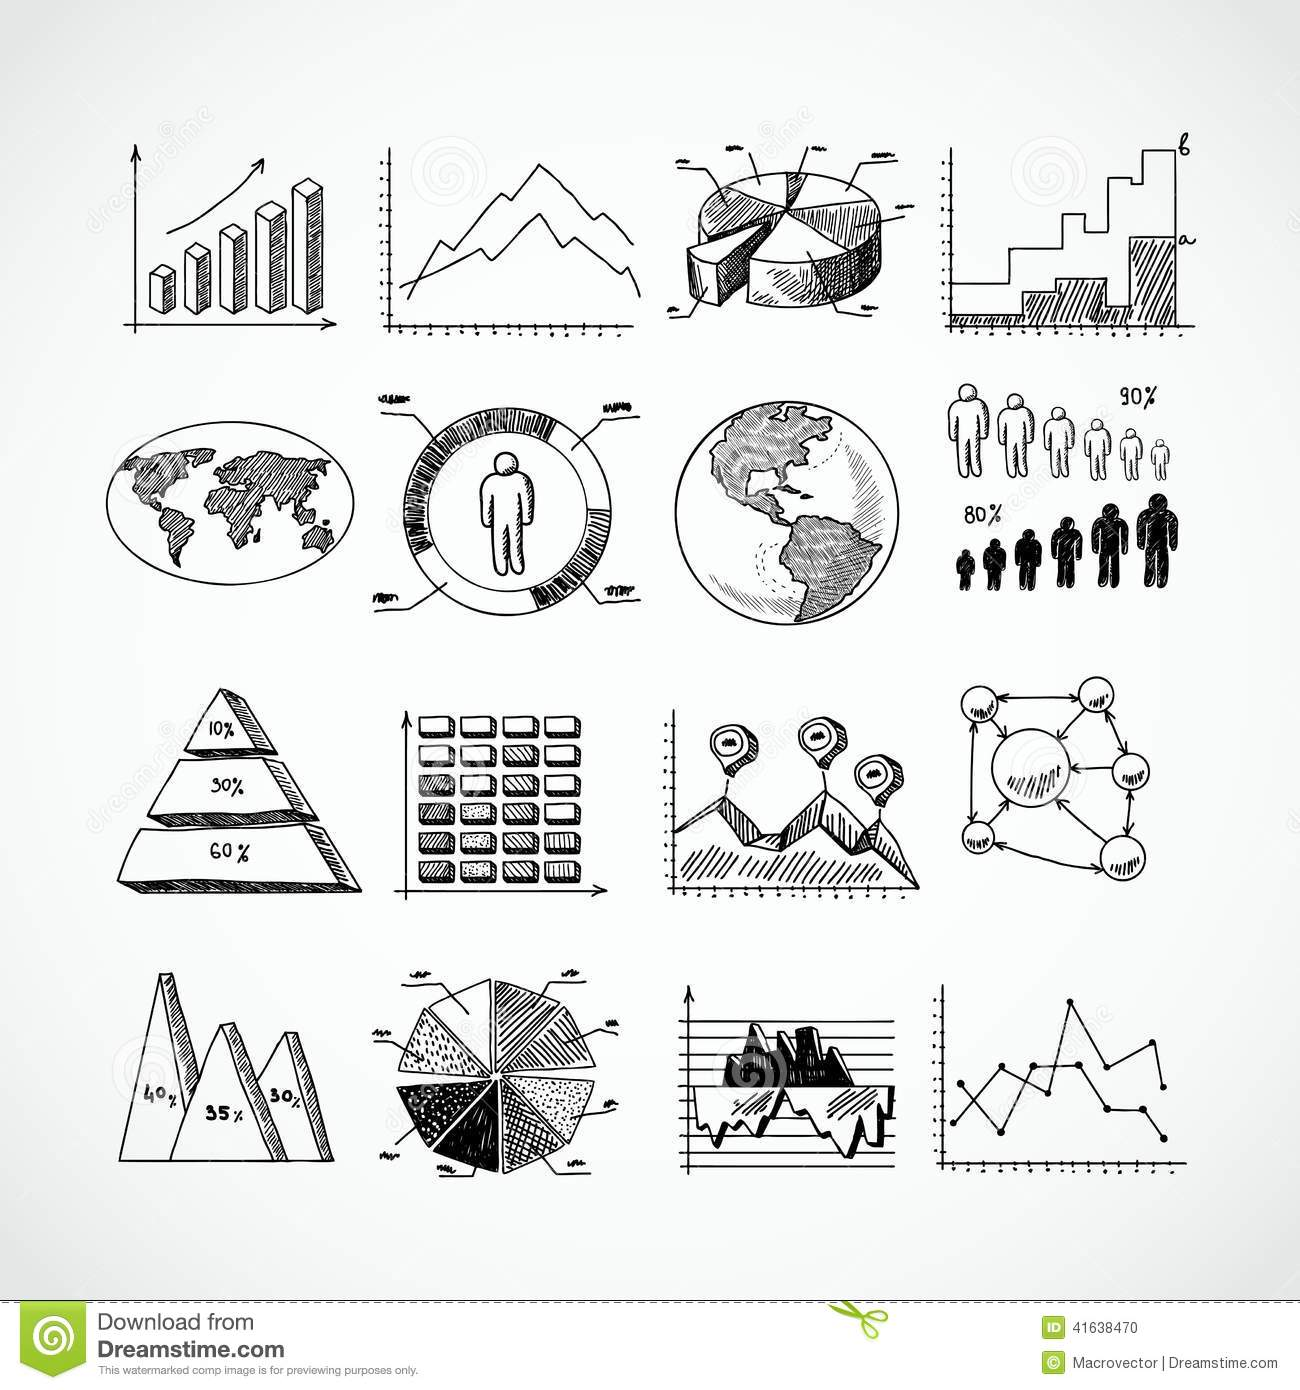 Sketch diagrams set stock vector. Illustration of business - 41638470